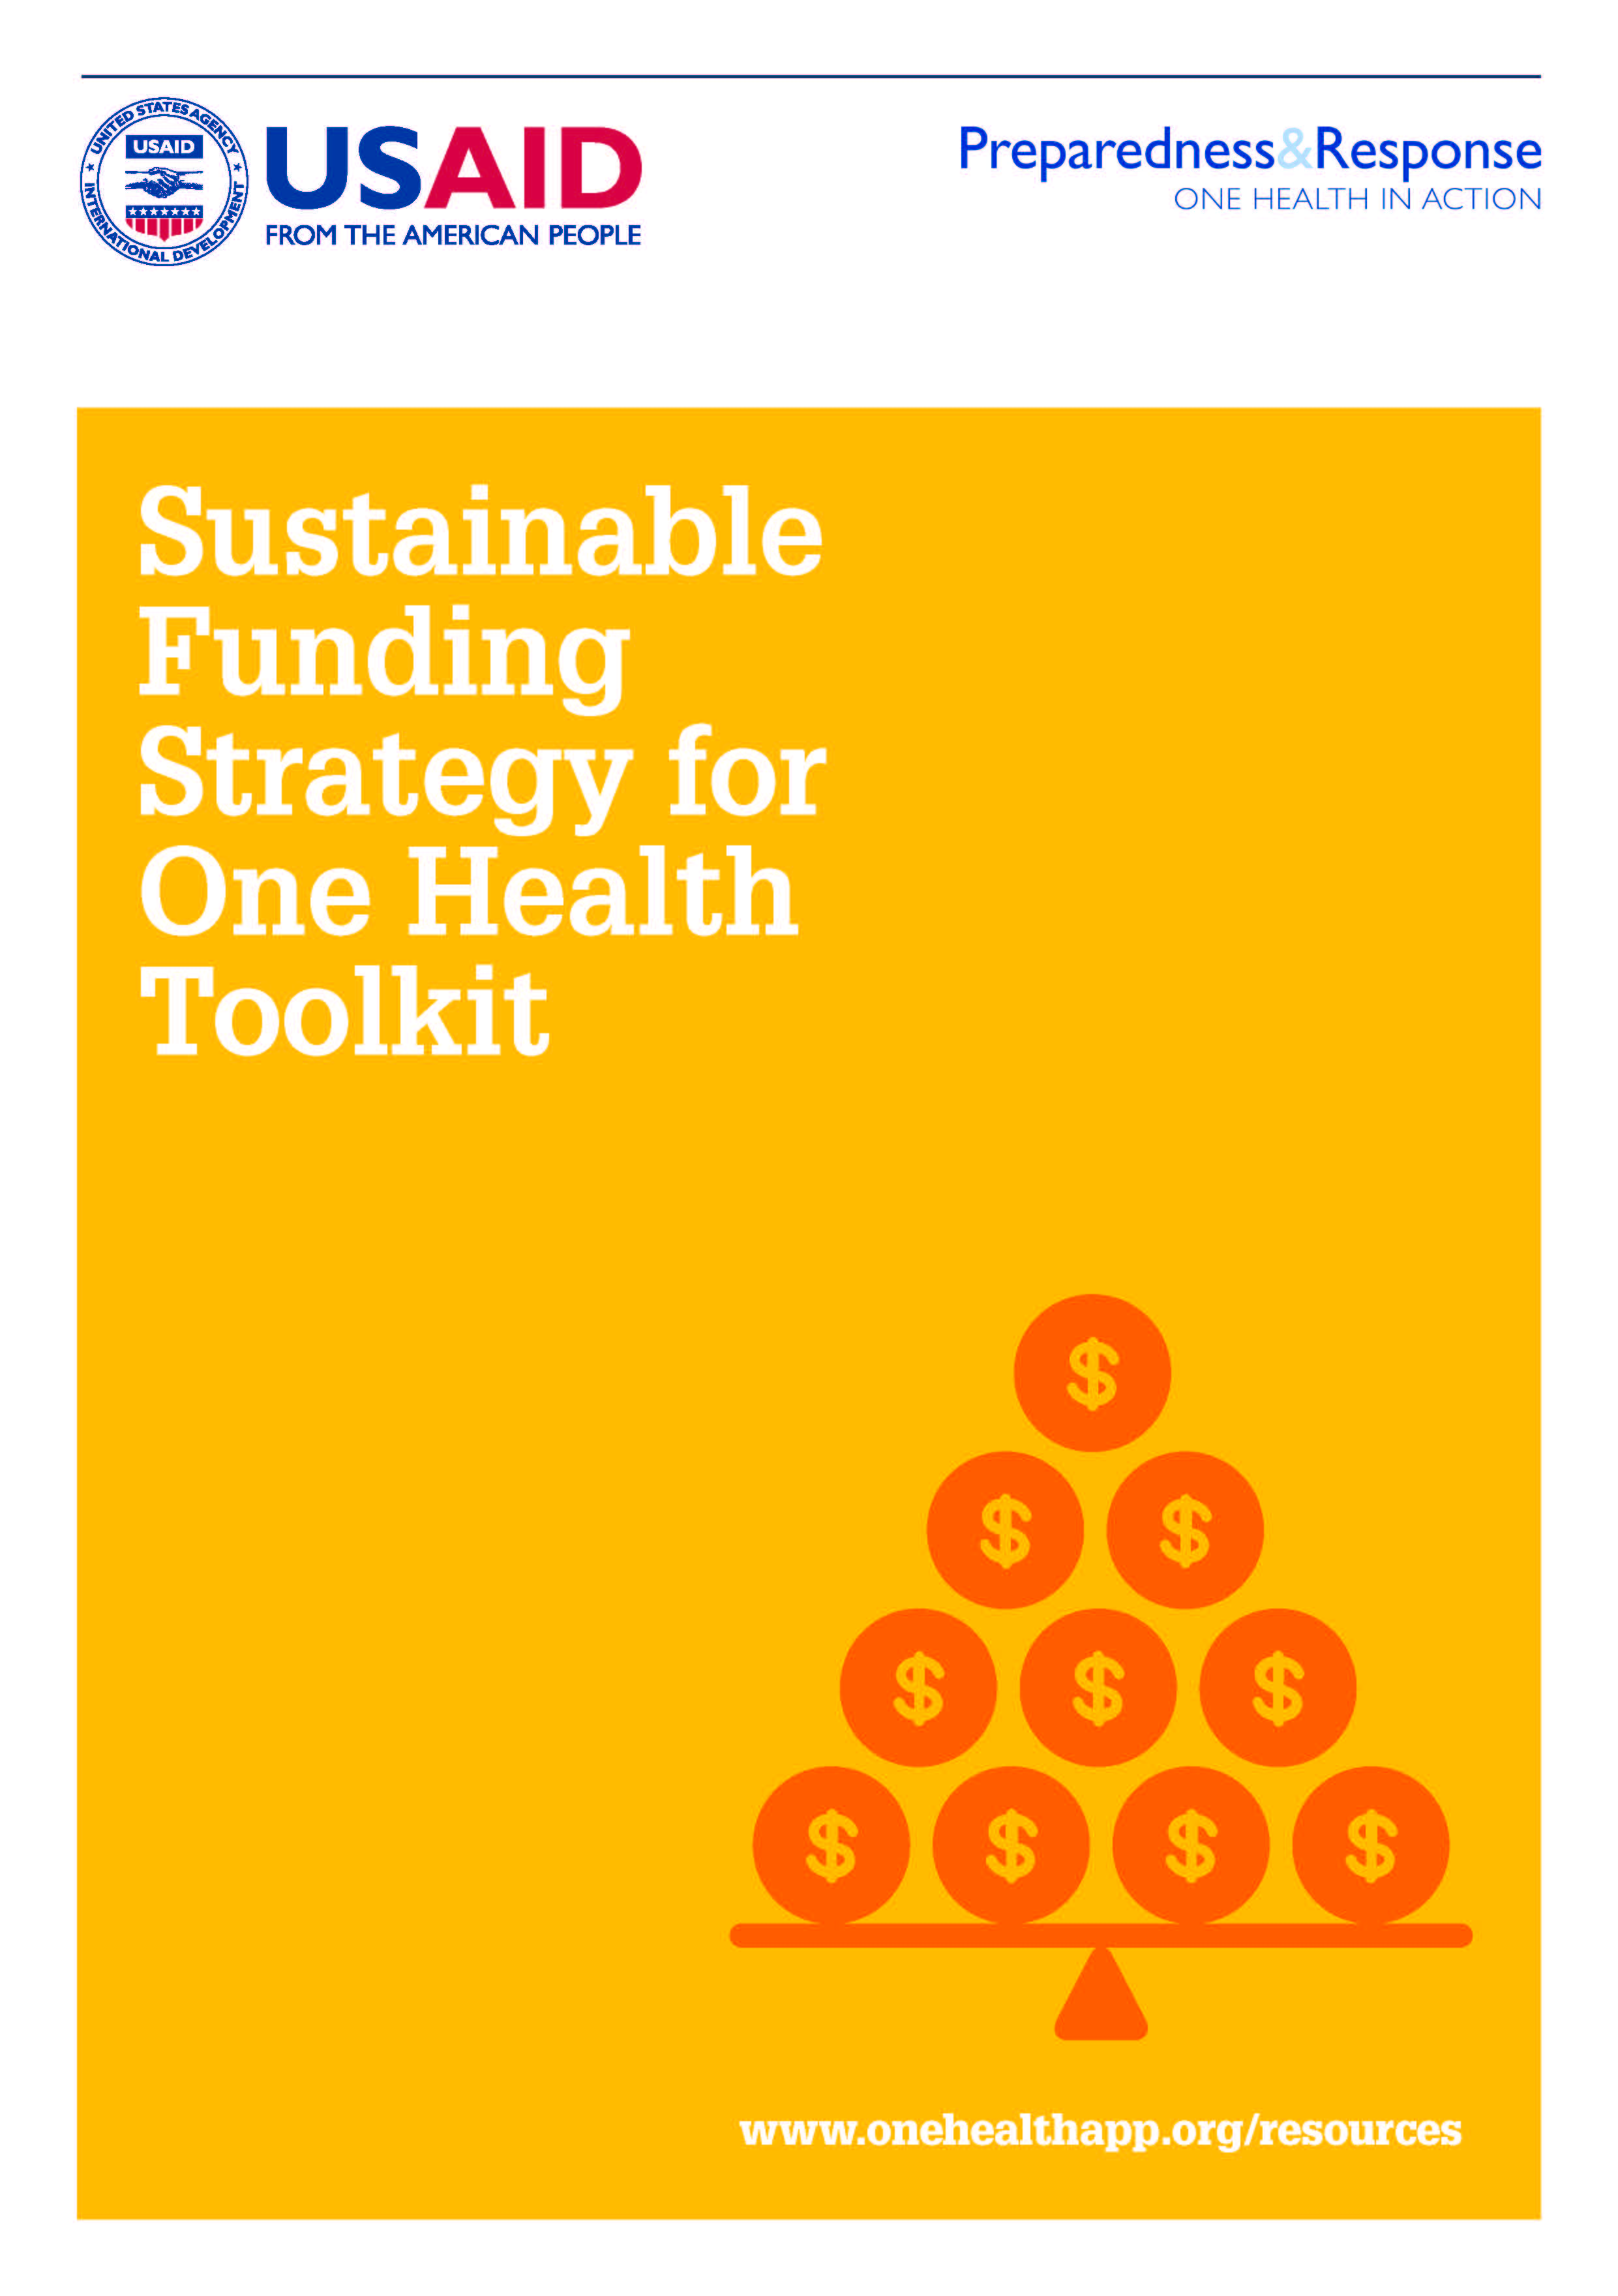 Sustainable_Funding_Strategy_Toolkit_Overview